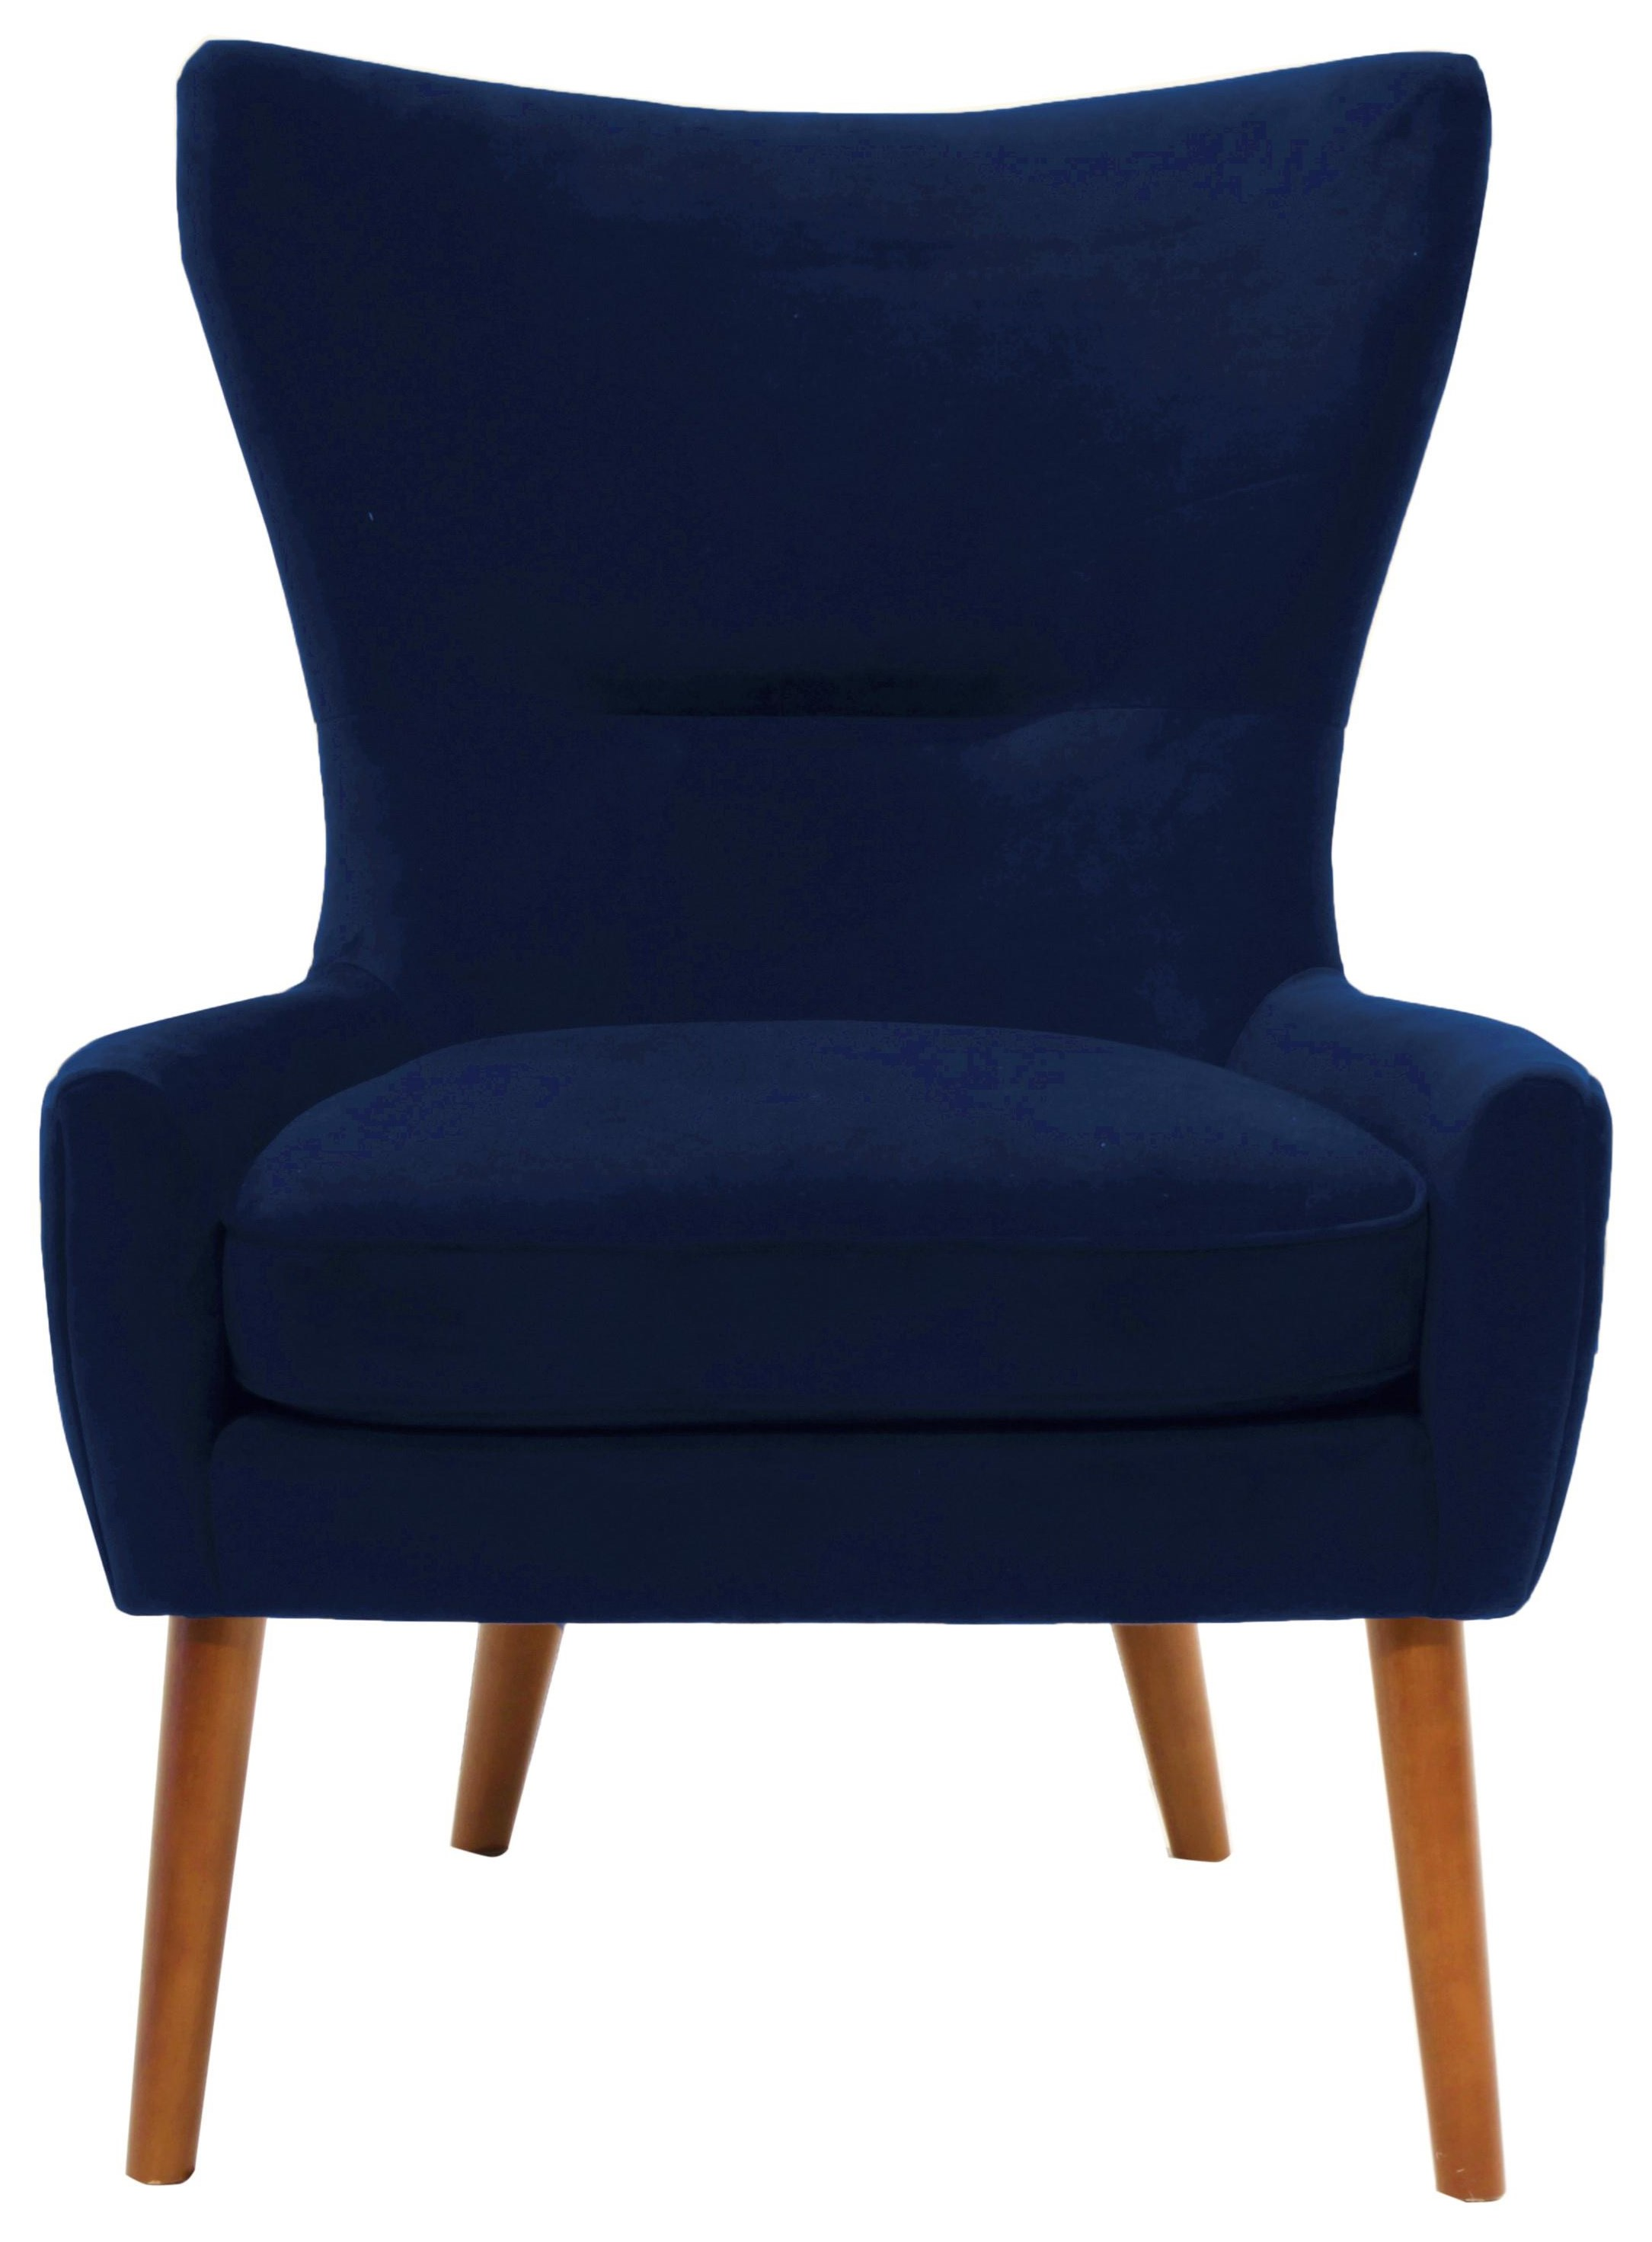 Erika Chair by Urban Chic at HomeWorld Furniture